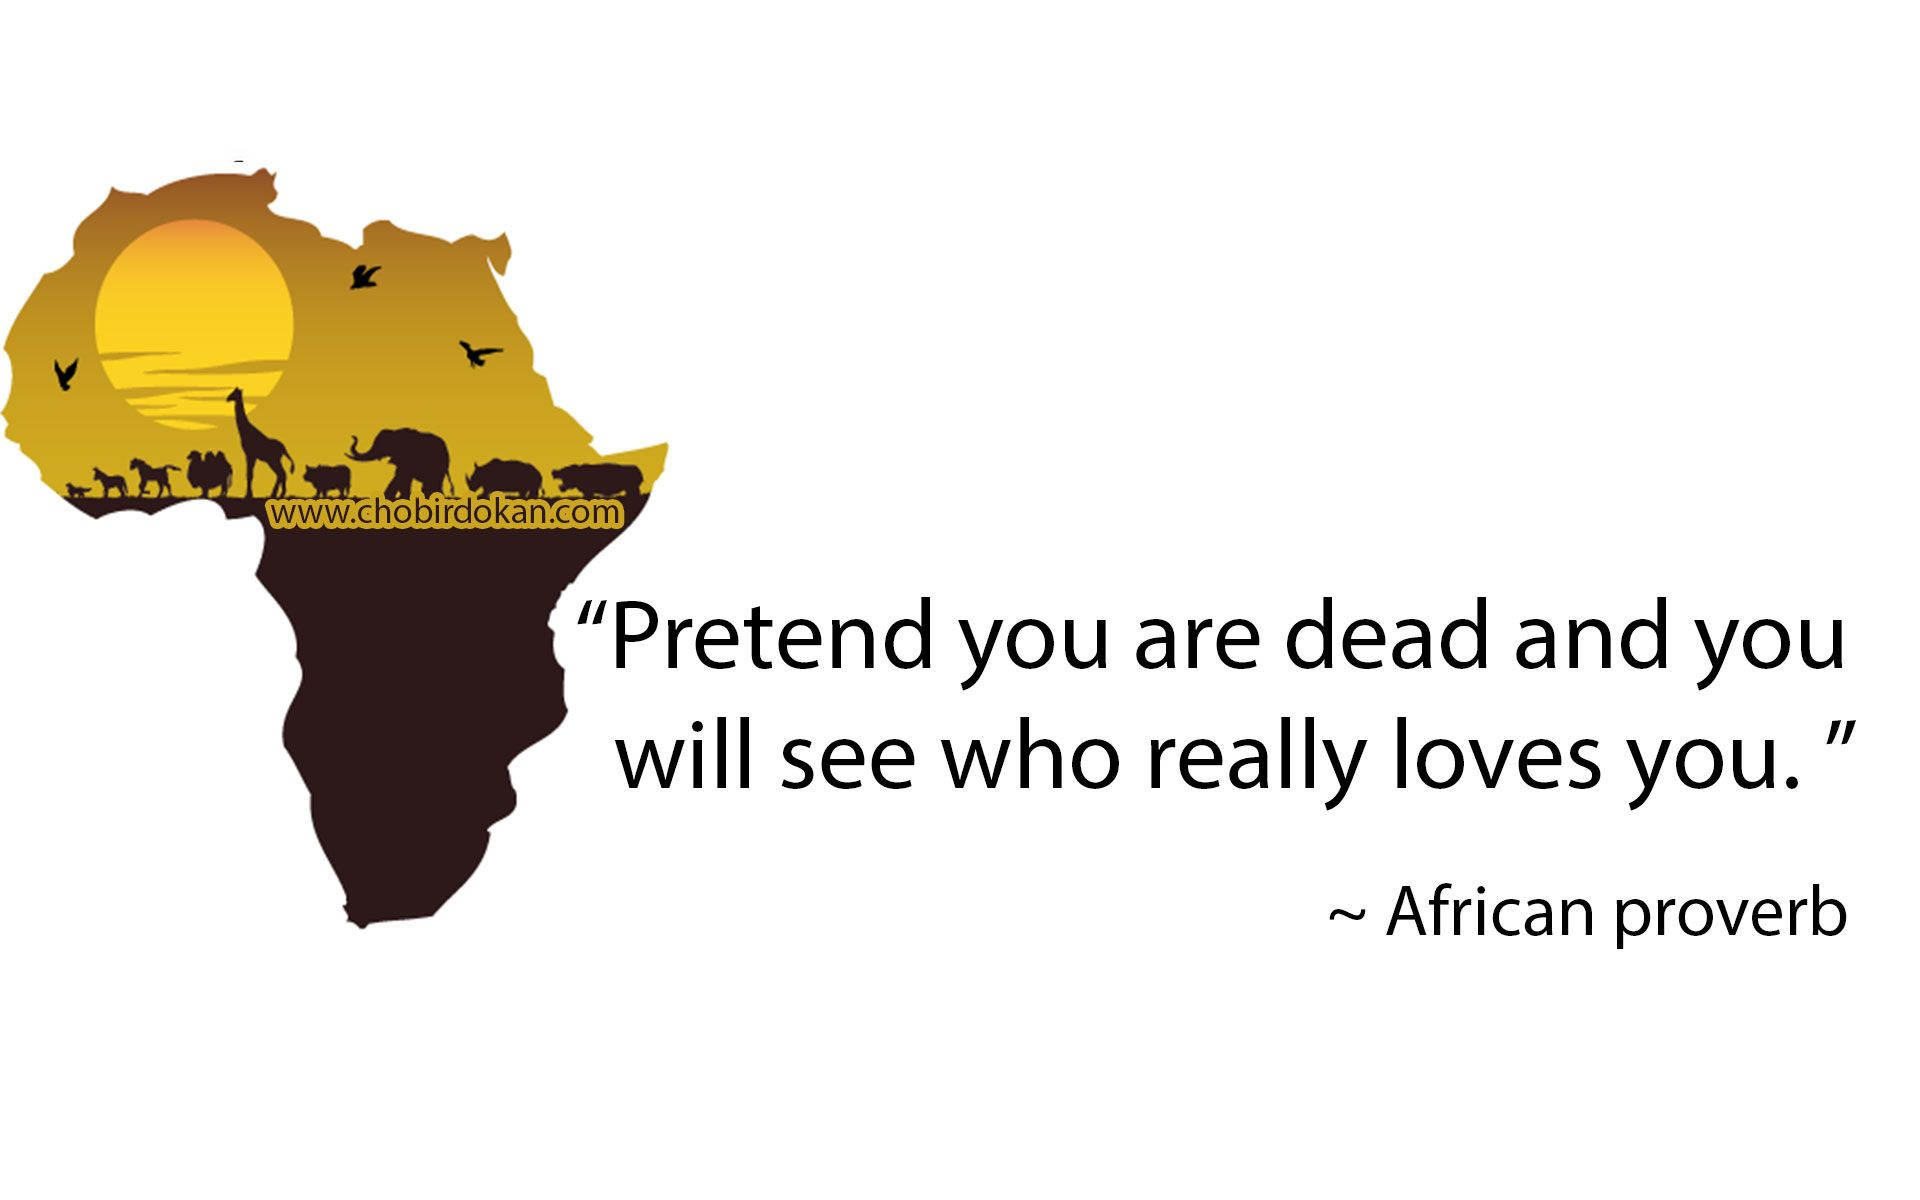 Ancient African Proverbs About Love That Will Make You Think Love Quotes Chobirdokan Proverbs About Love African Proverb African Proverbs About Love